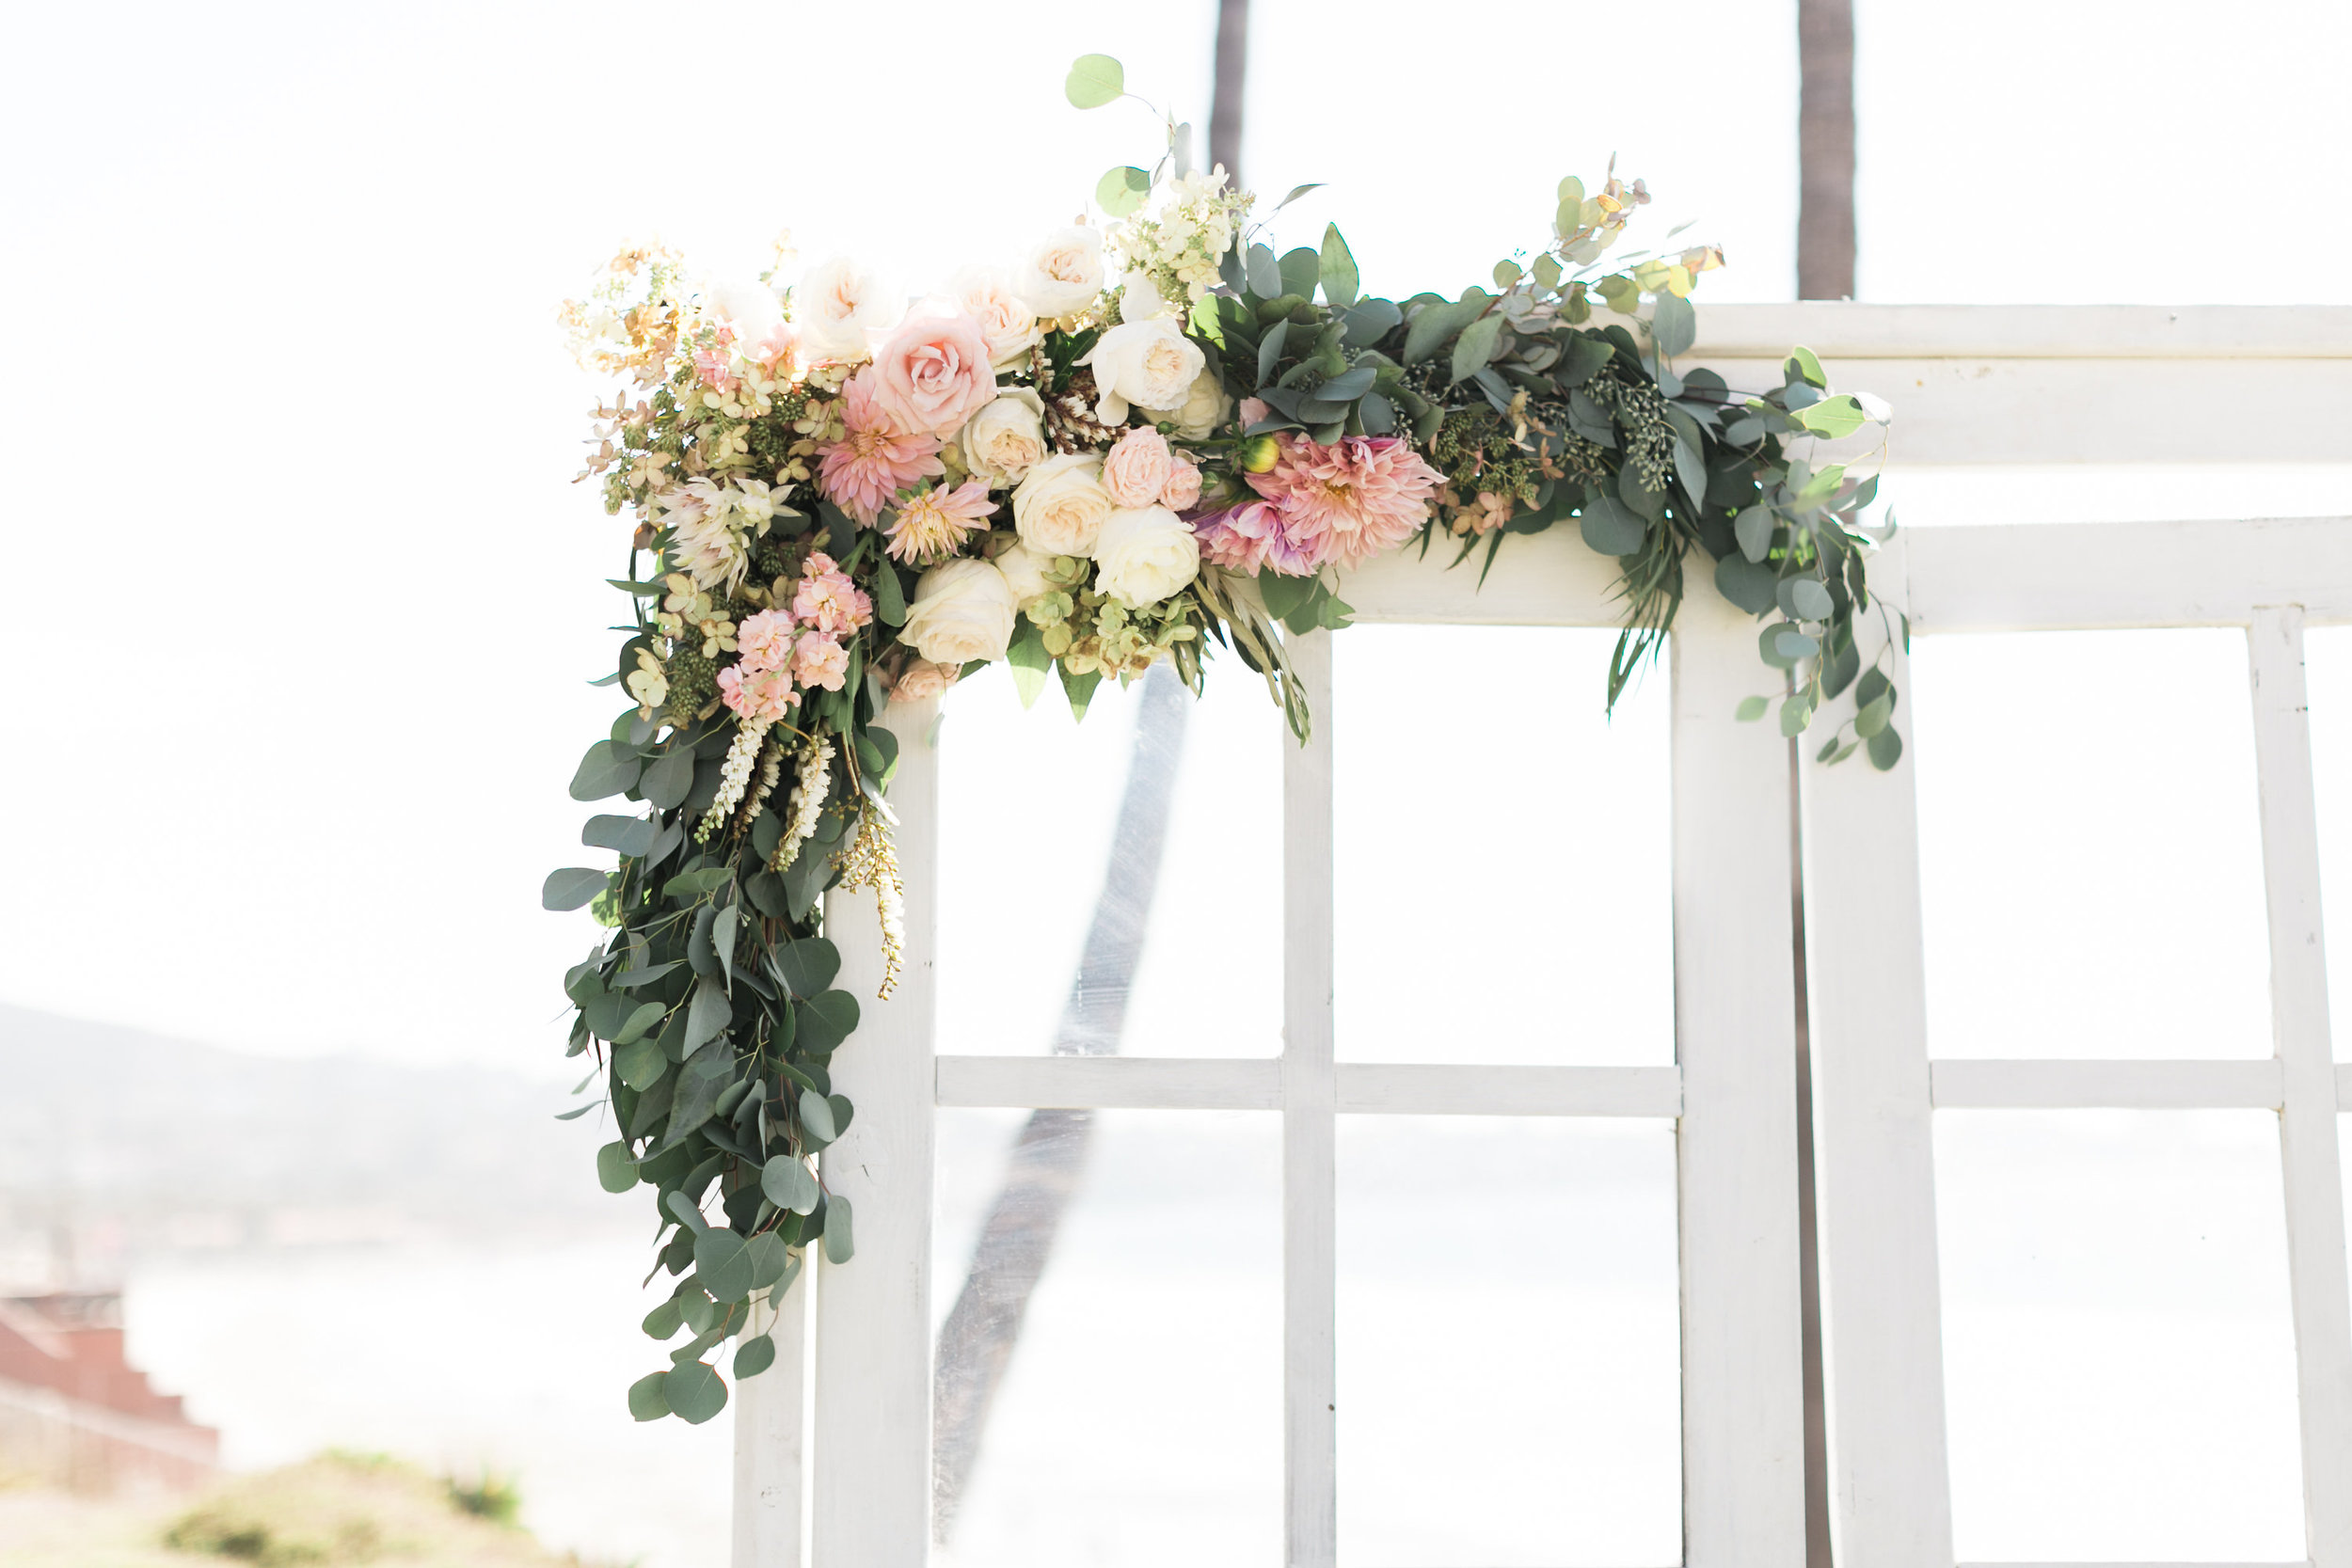 weddingceremonyflowers.jpg